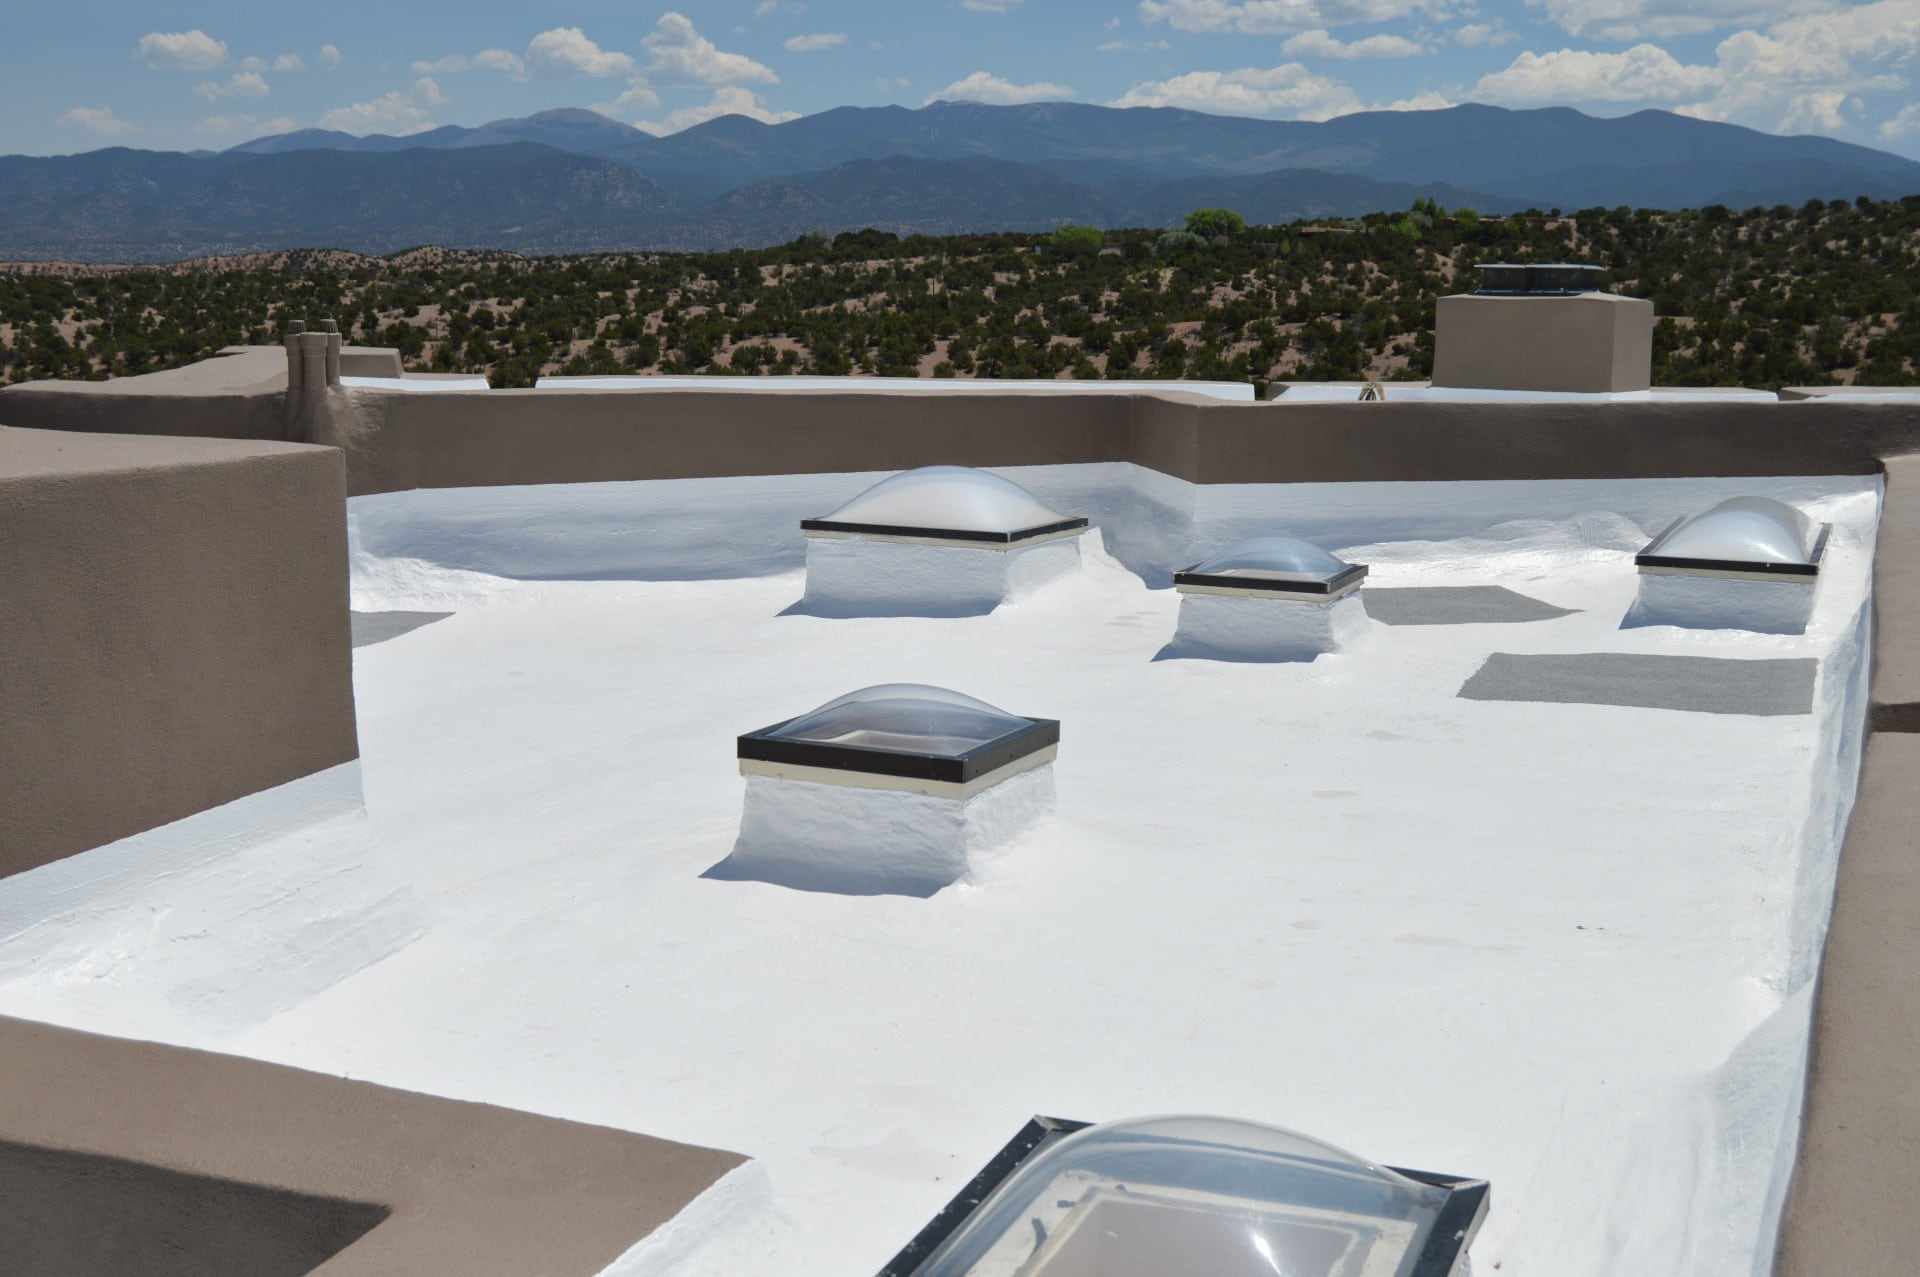 Roof that has a new rubber roof coating applied